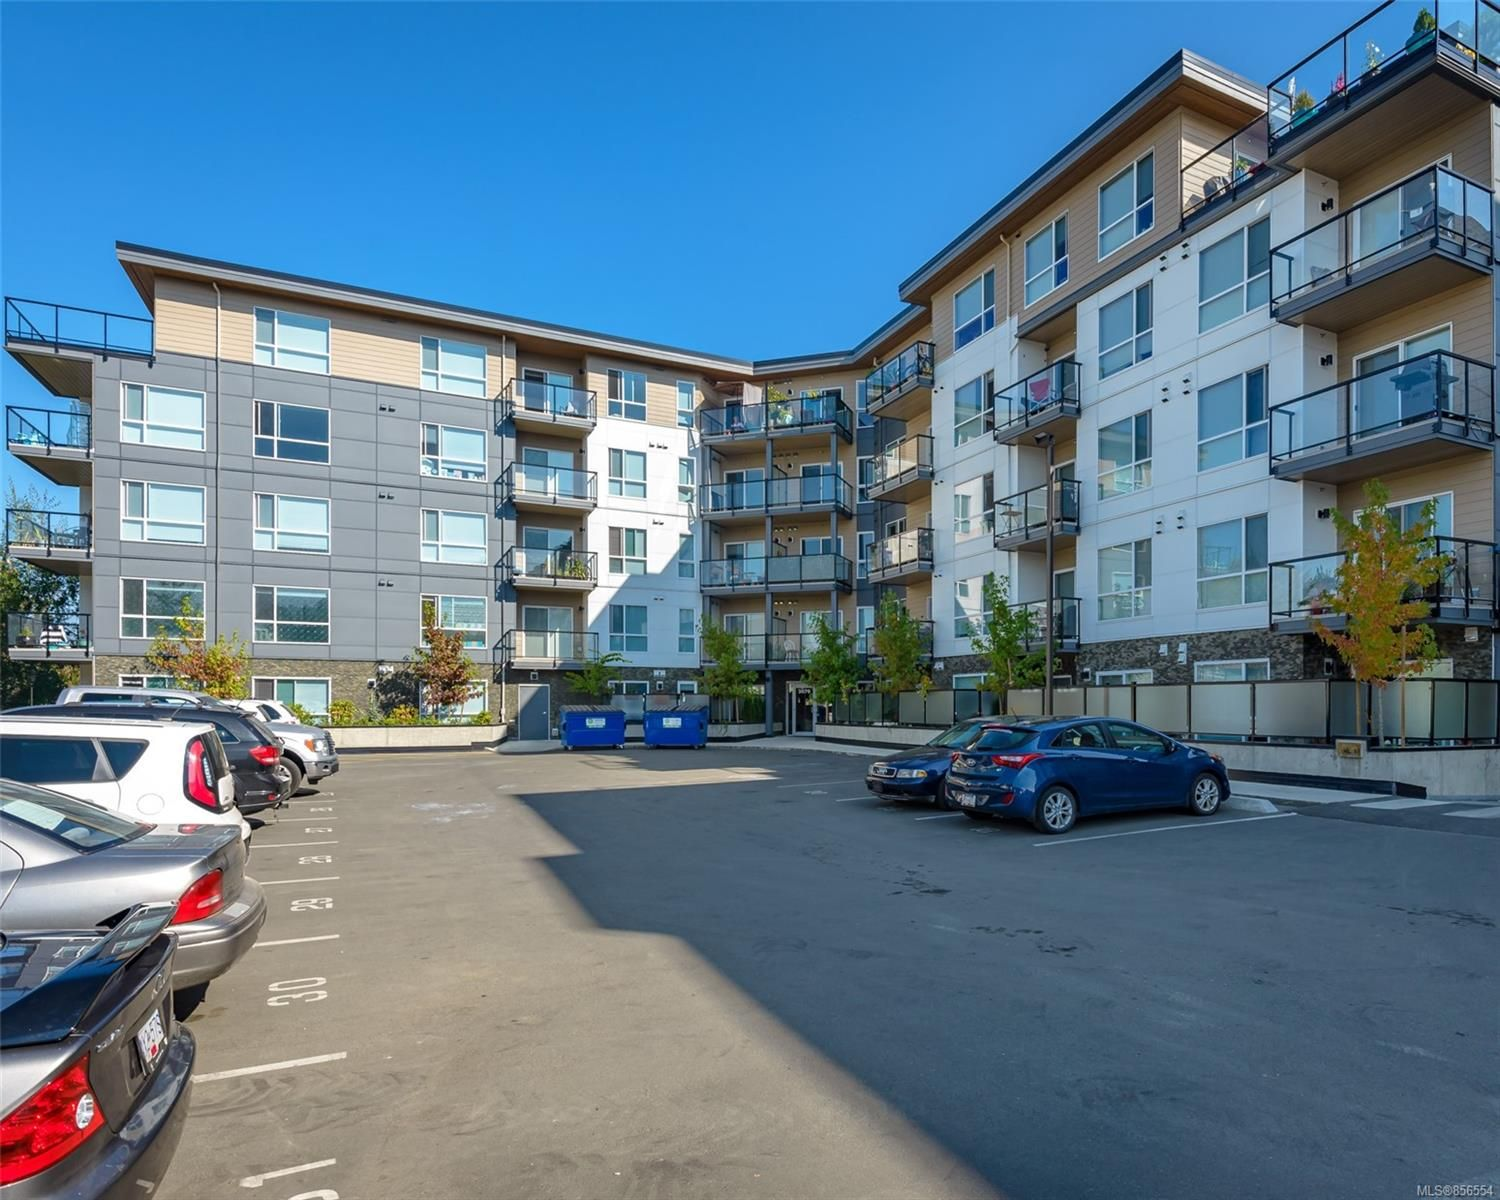 Main Photo: PH3 3070 Kilpatrick Ave in : CV Courtenay City Condo for sale (Comox Valley)  : MLS®# 856554